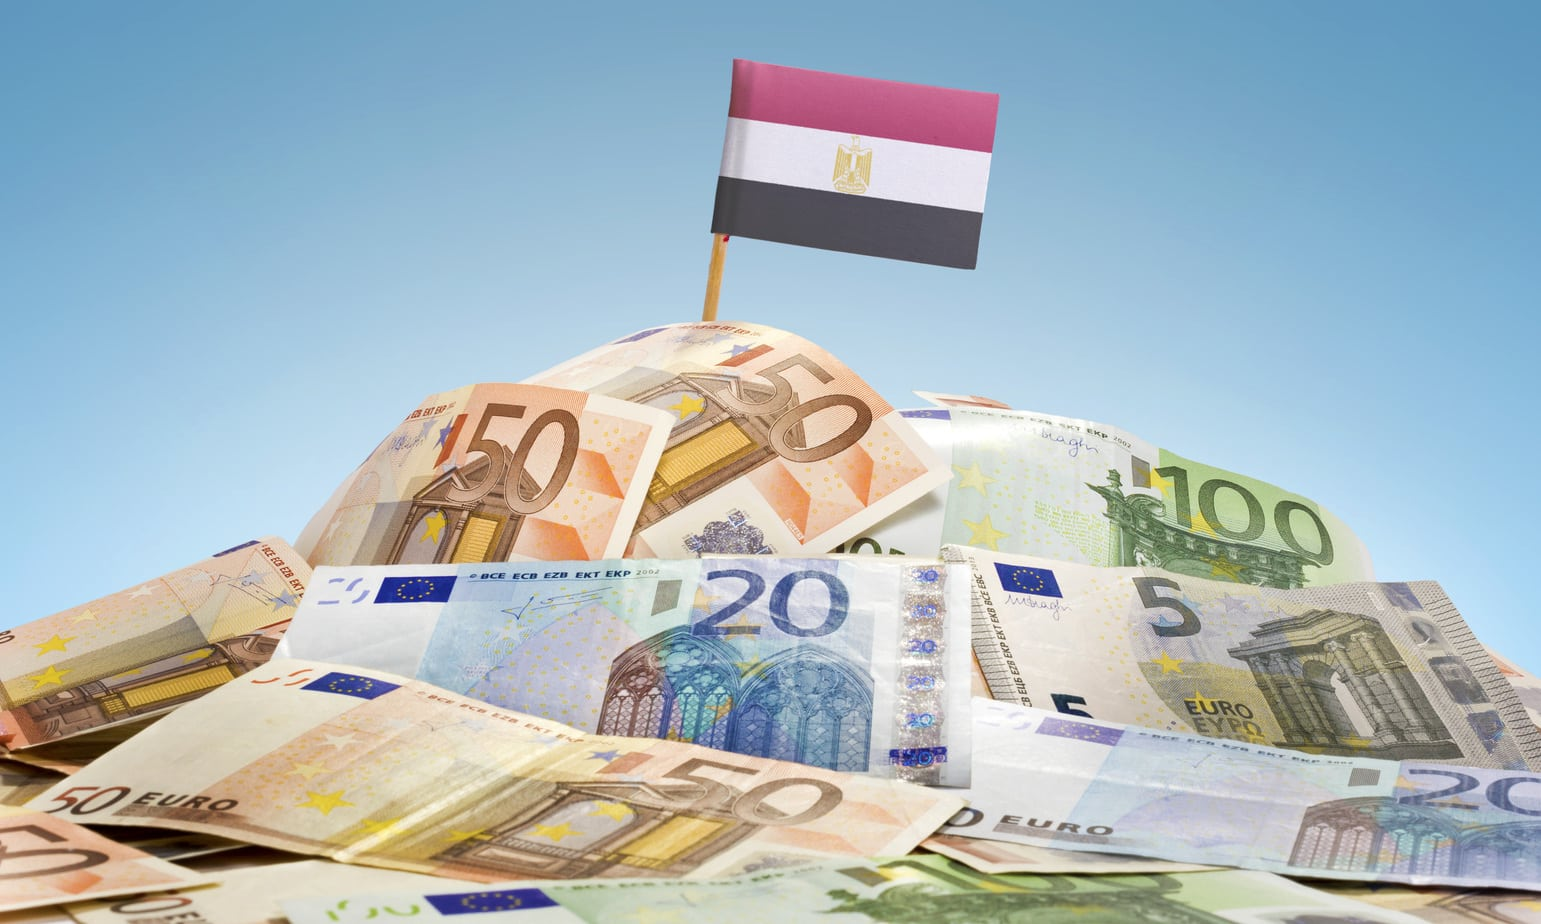 Egyptian Flag and Currencies